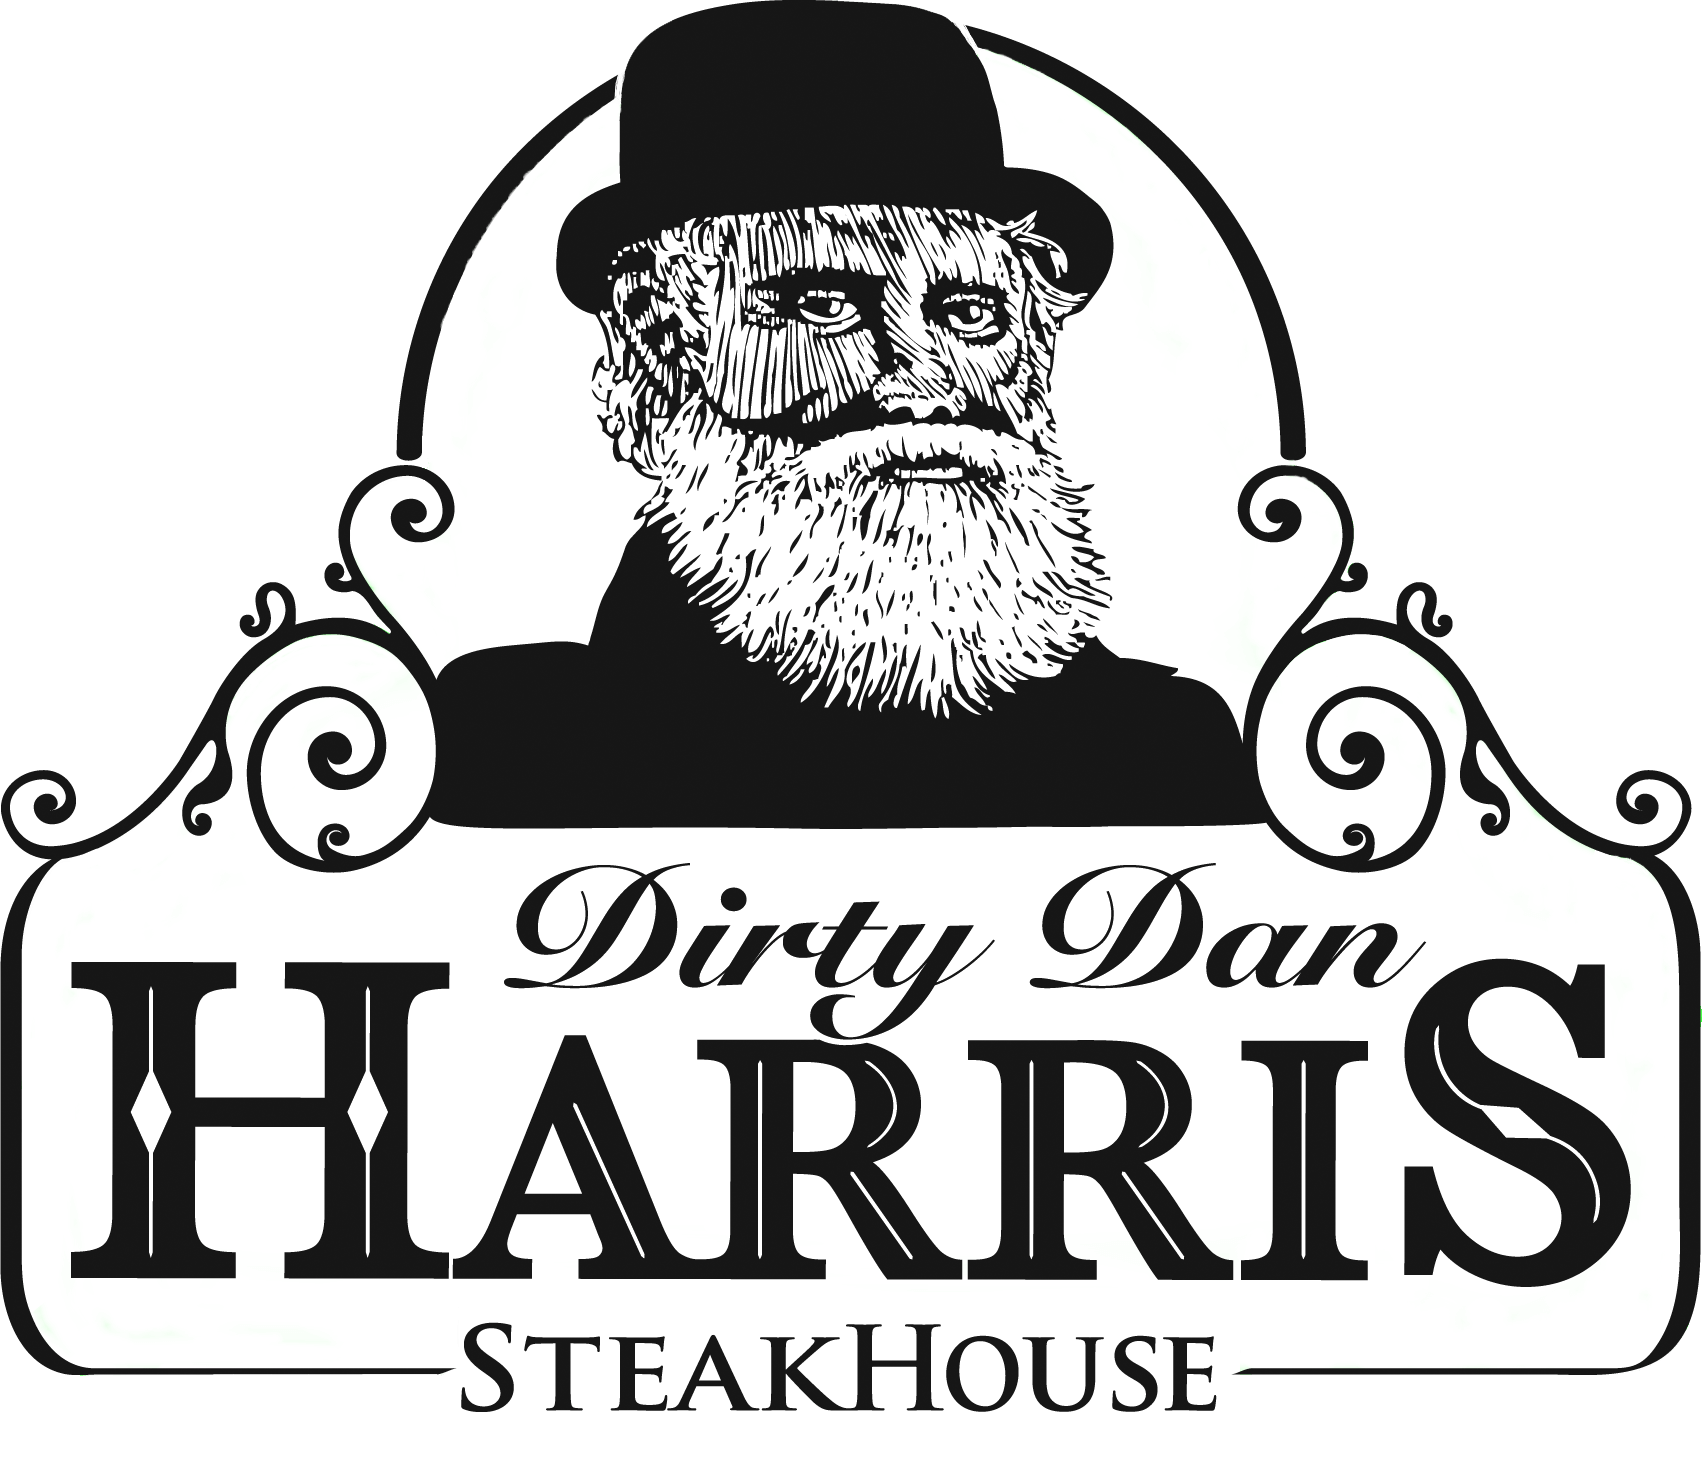 Dirty Dan Harris Steakhouse